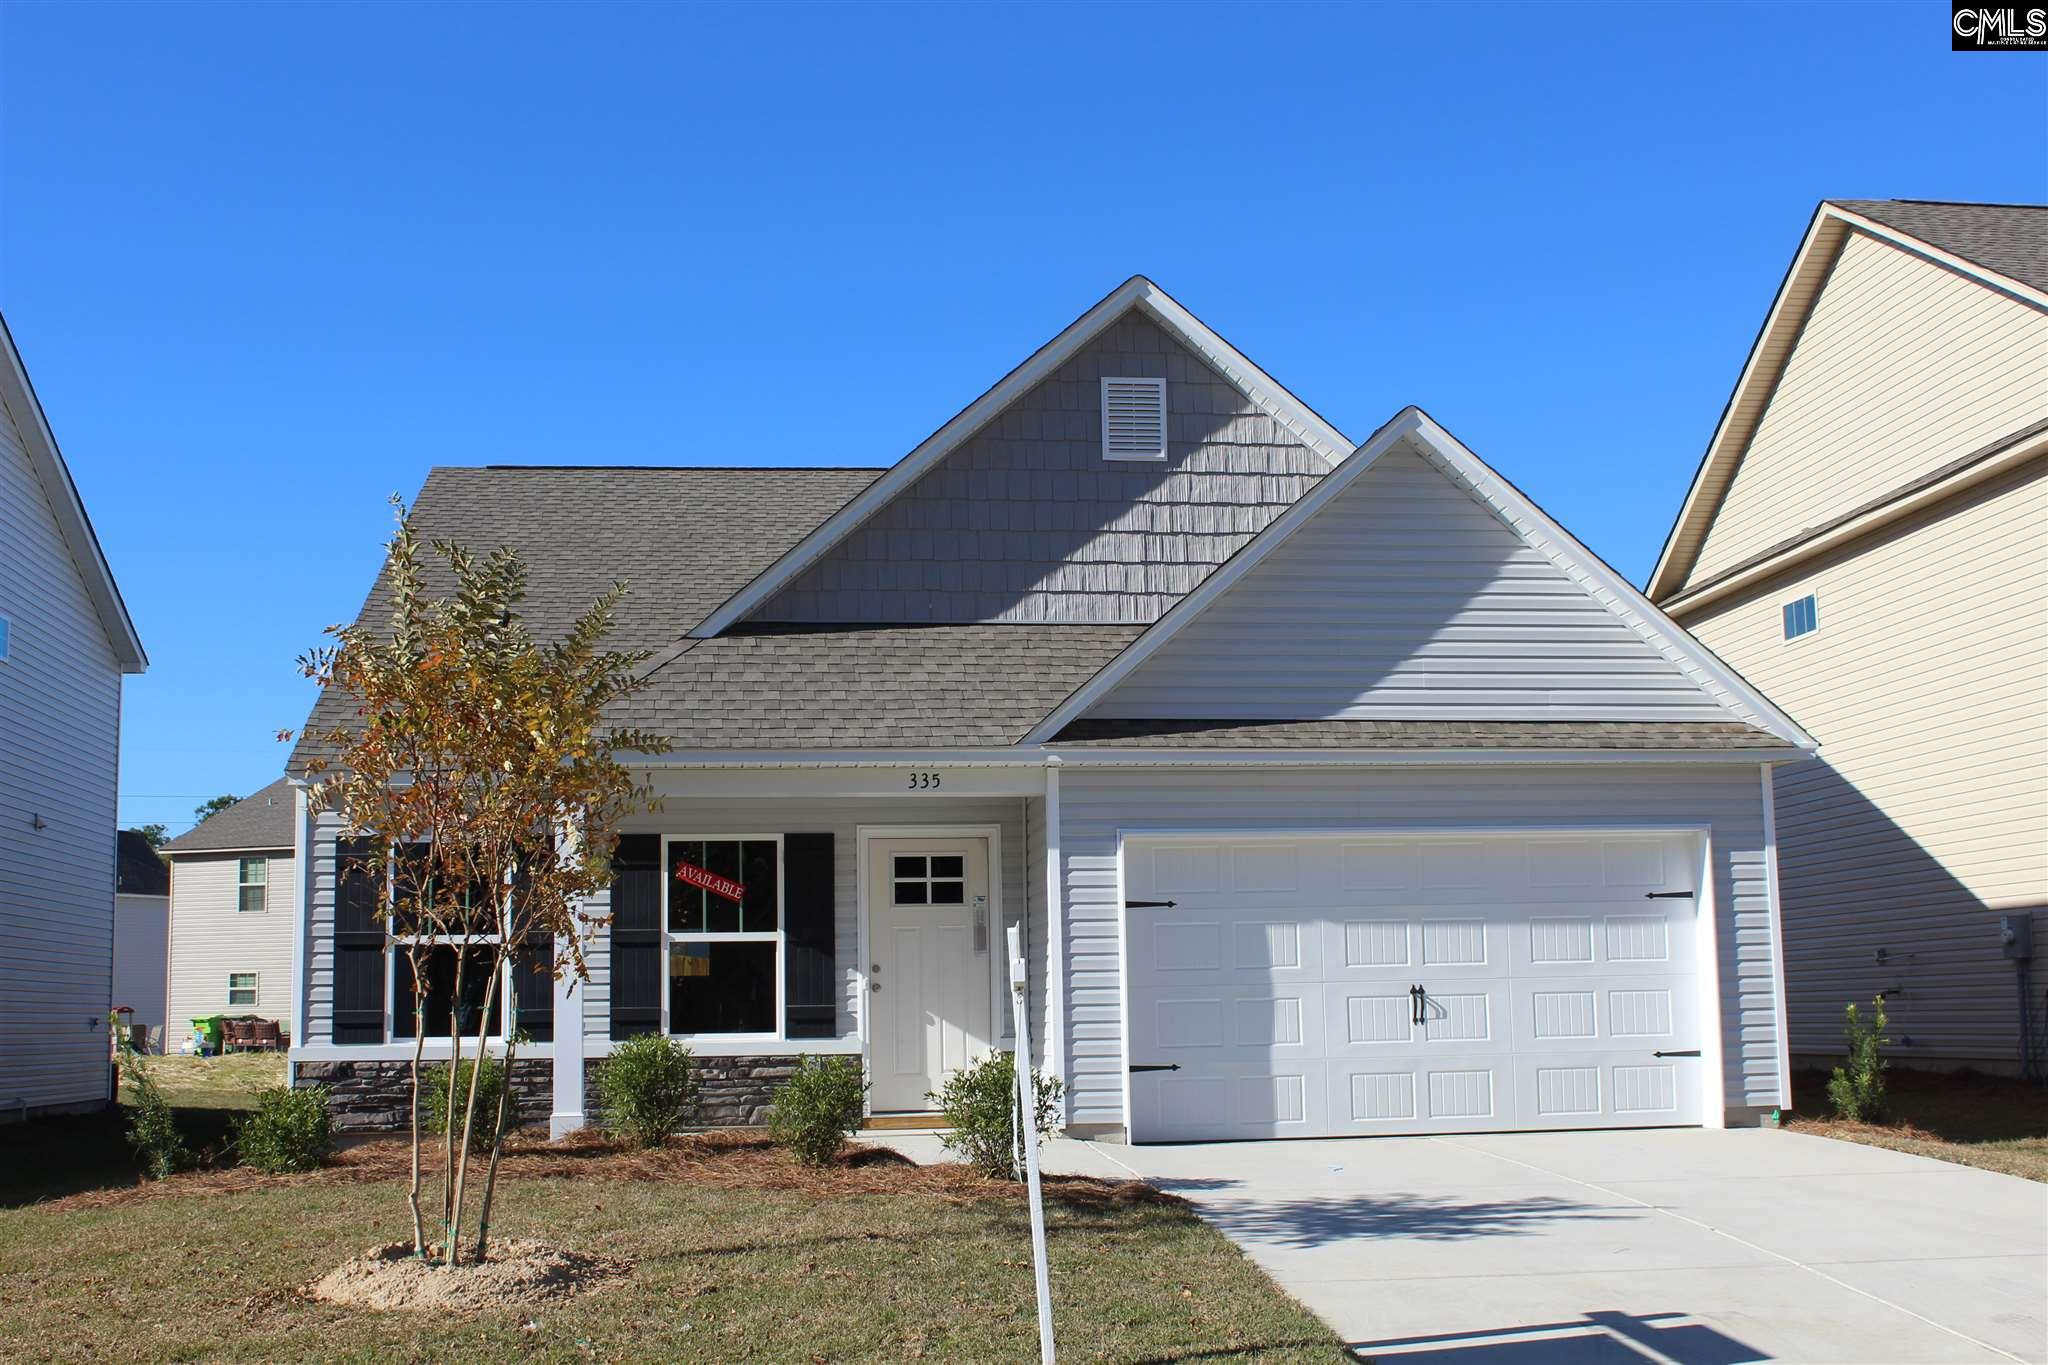 335  Fairford #24 Blythewood, SC 29016